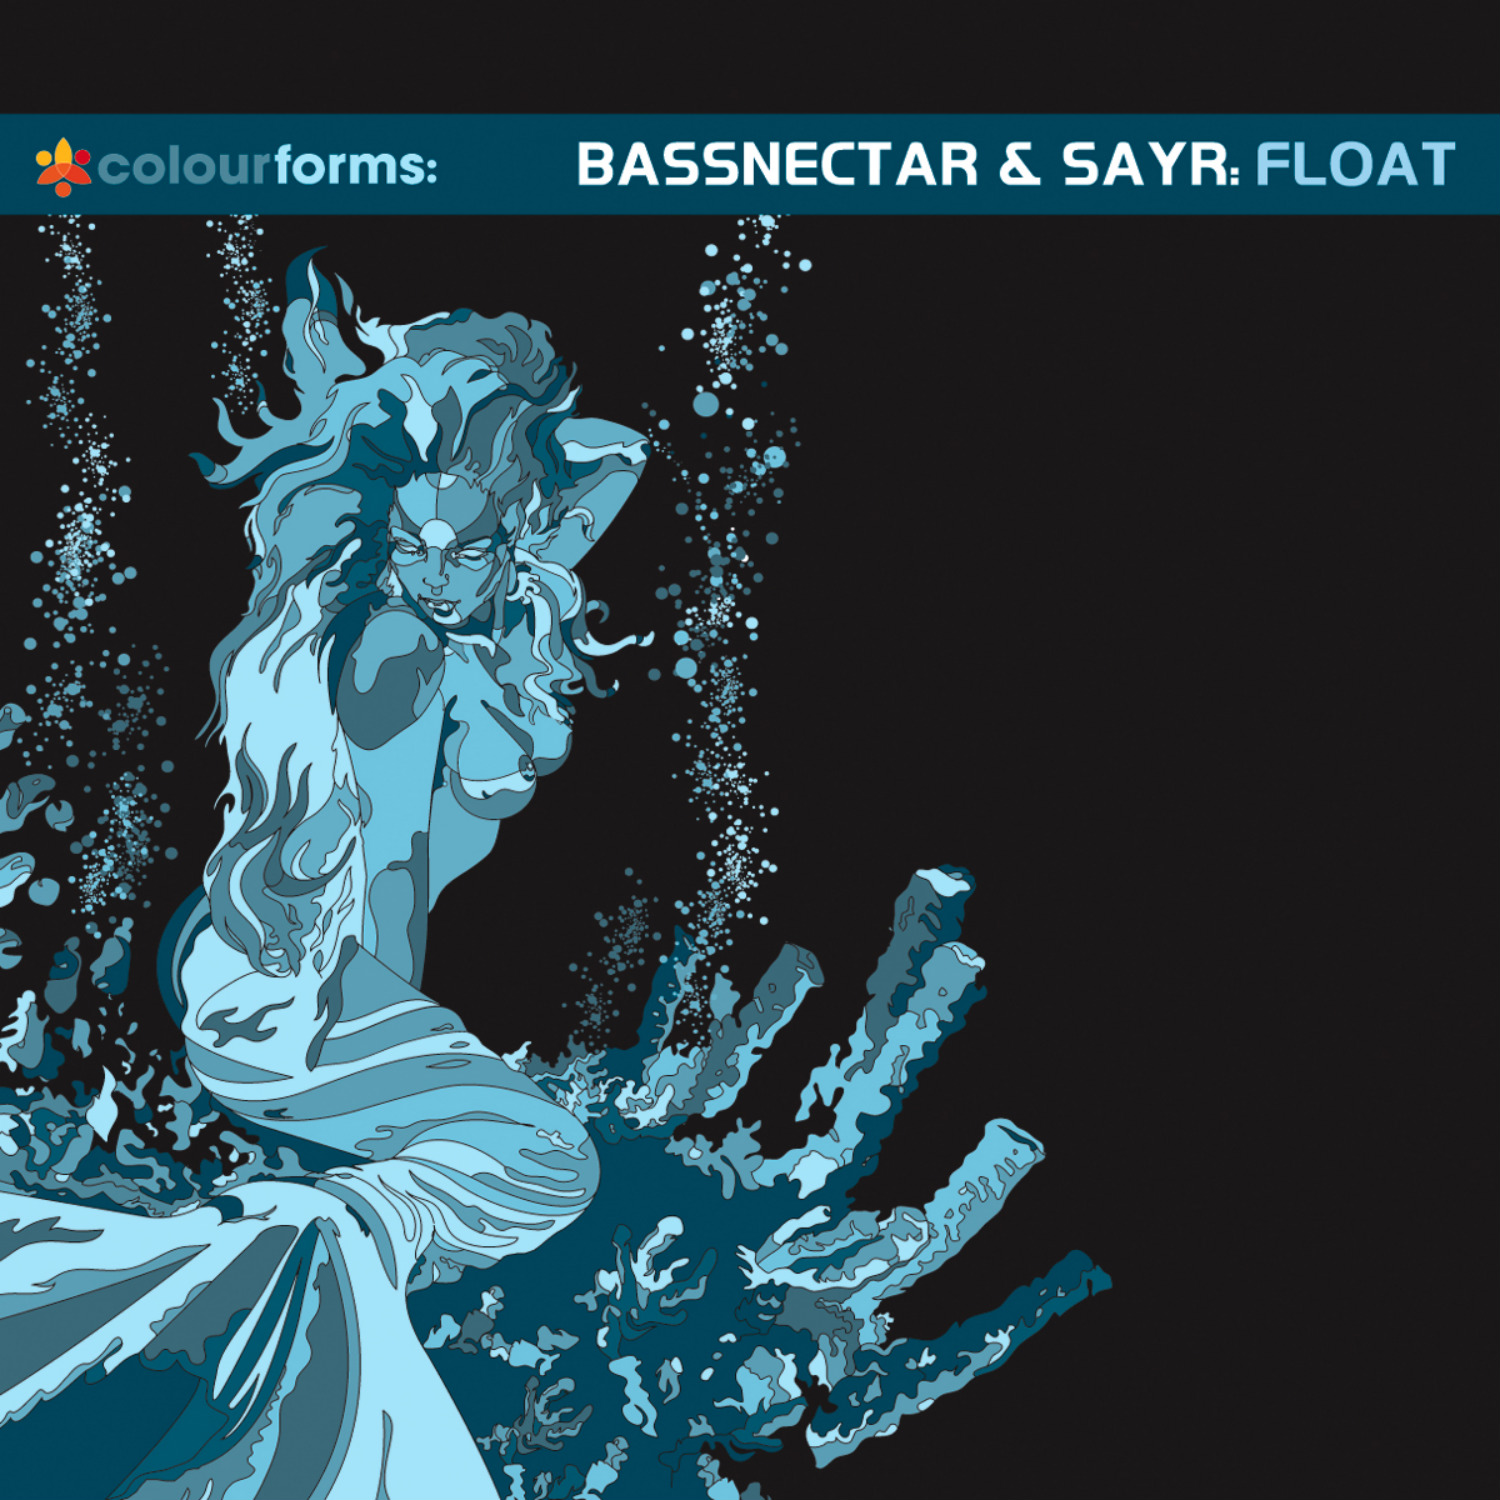 Bassnectar & Sayr - Float